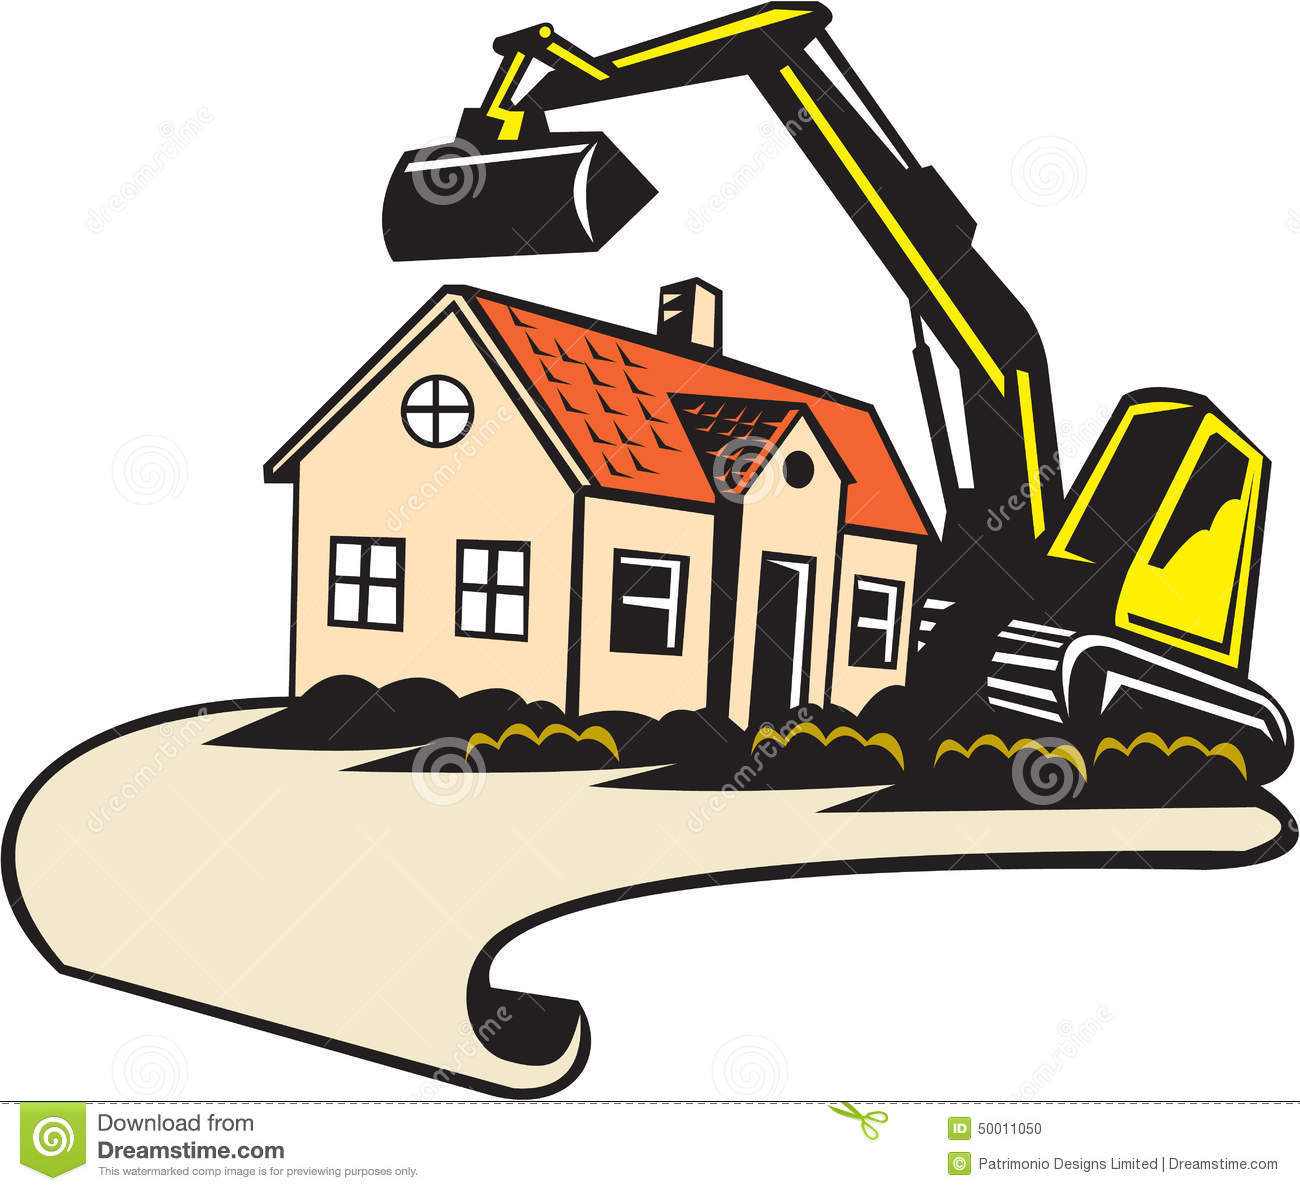 Building Construction Graphics : House demolition building removal stock vector image